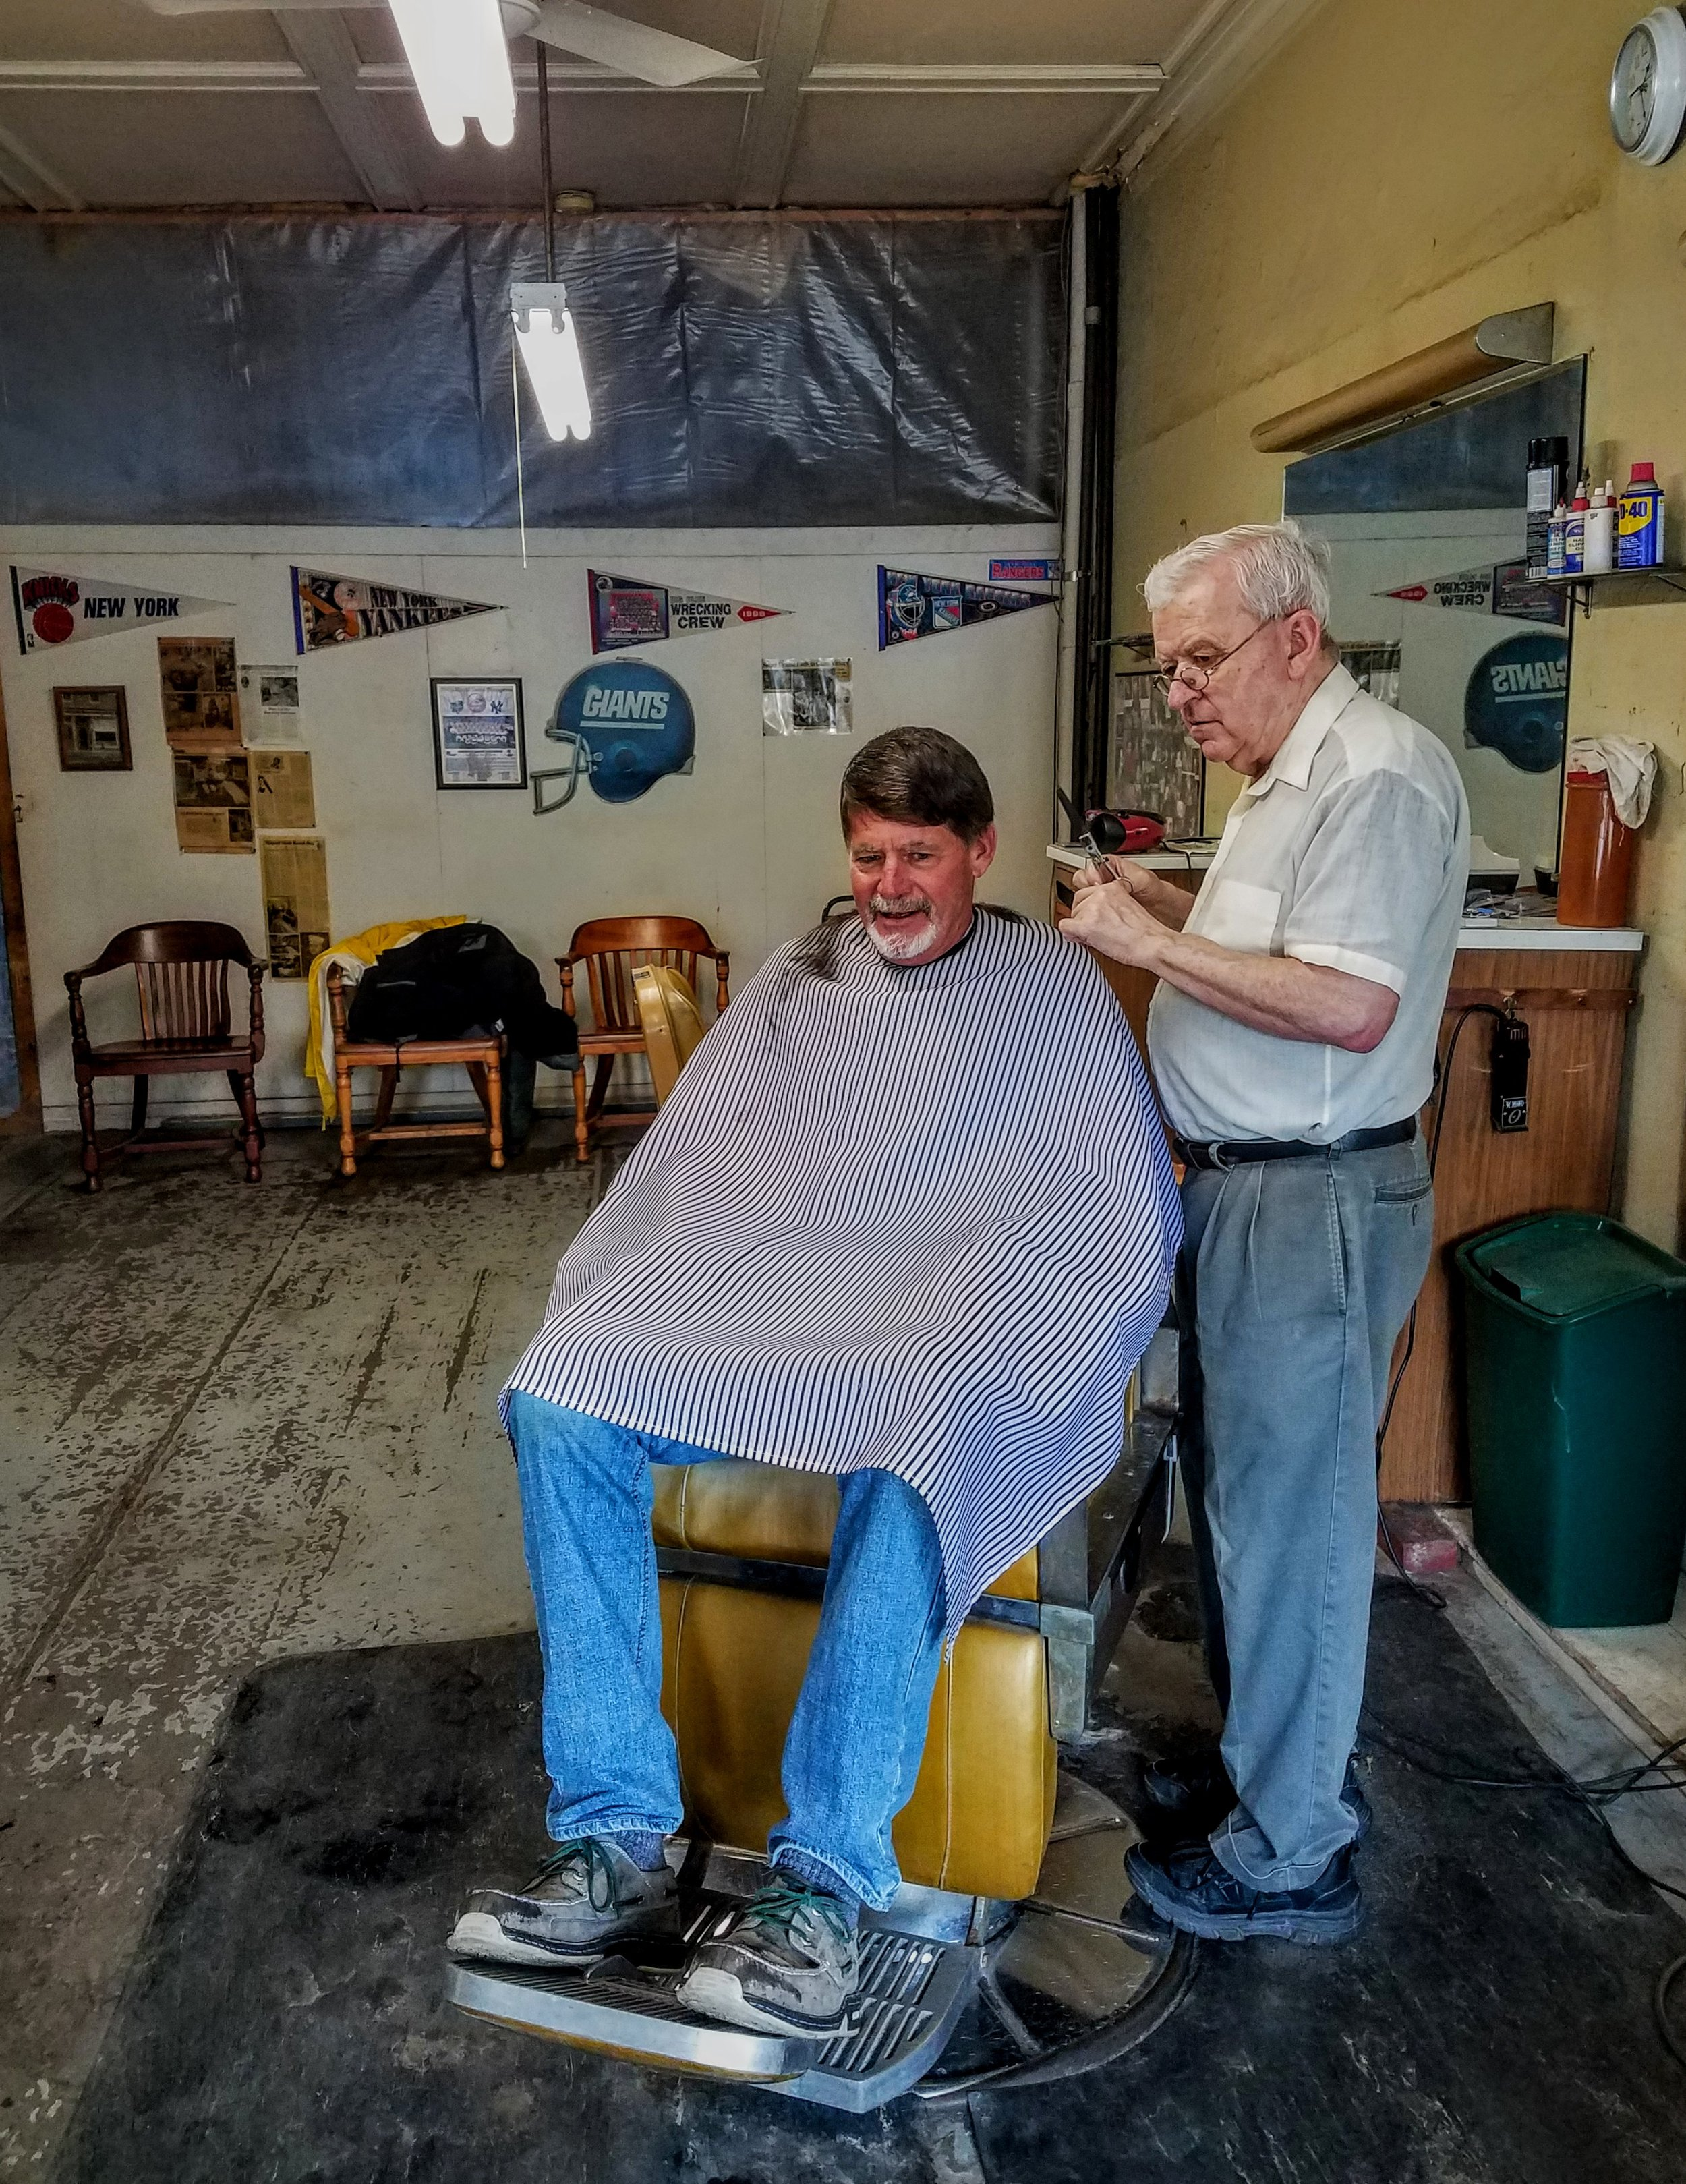 Larry takes a chance with John the barber at this step-back-in-time barber shop